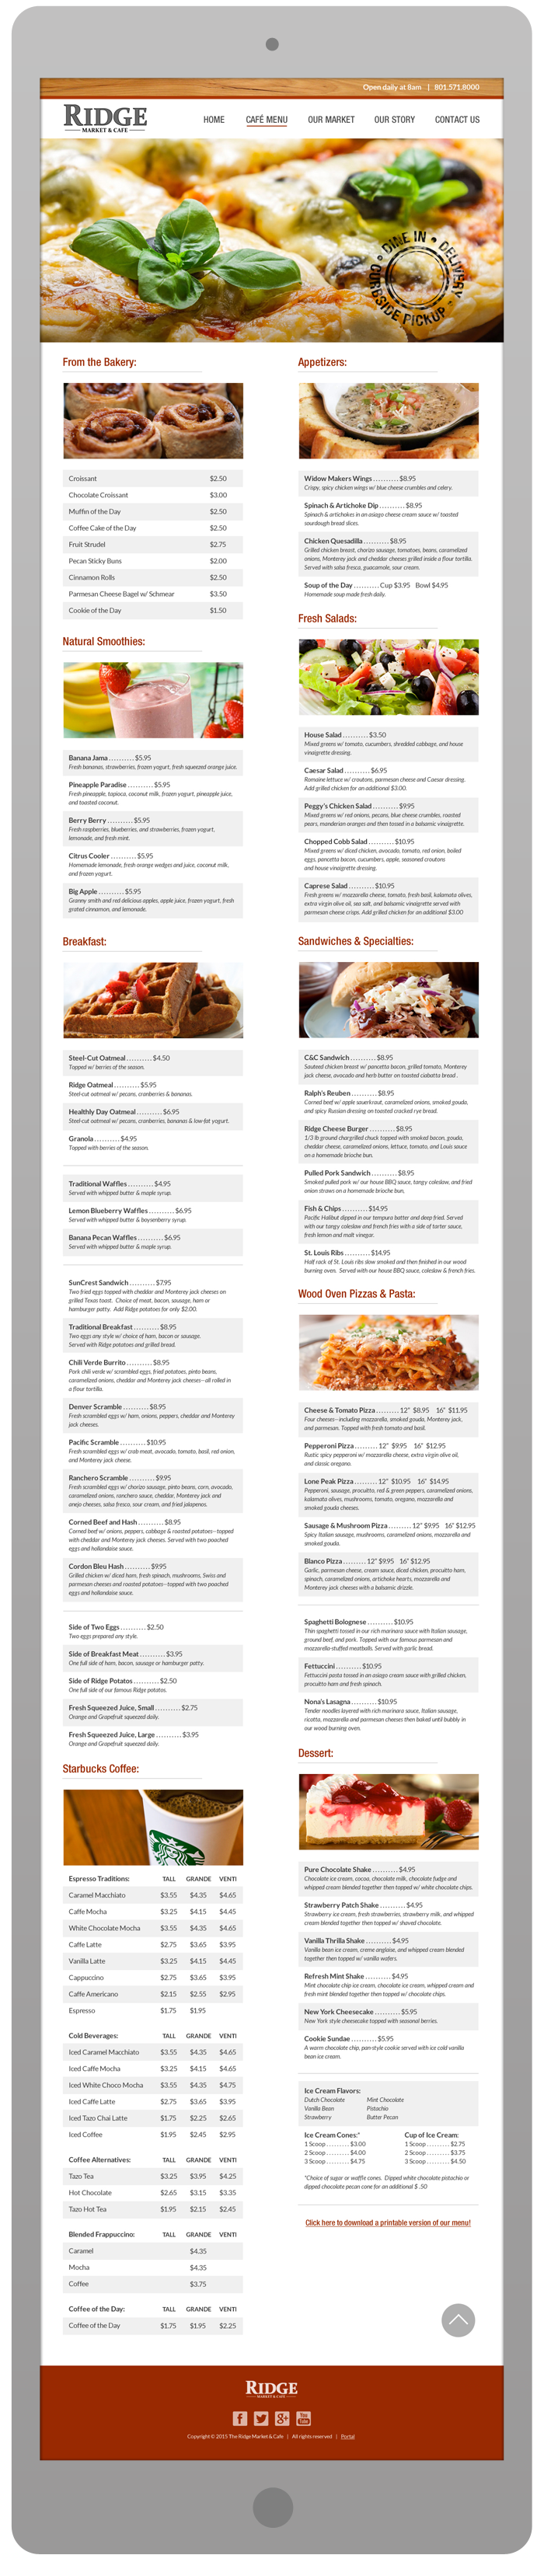 New Website Design - Cafe Menu